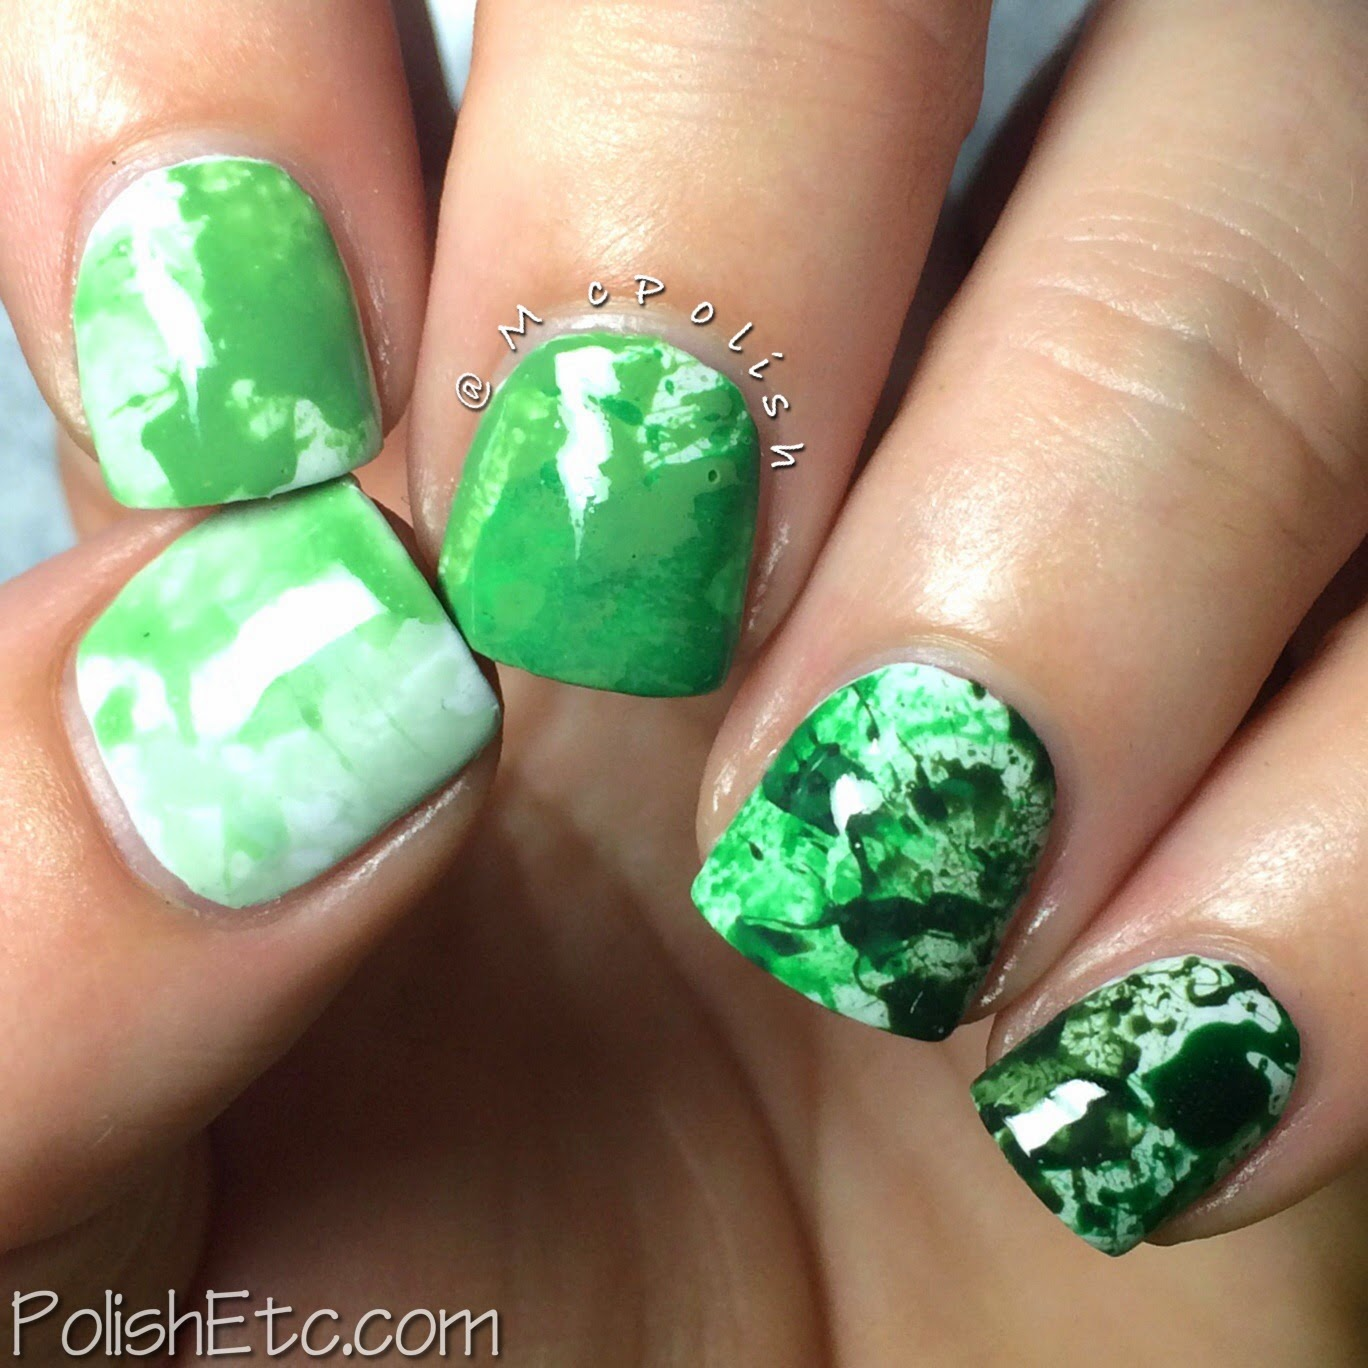 #31dc2014 - 31 Day Nail Art Challenge 2014 by McPolish - GREEN